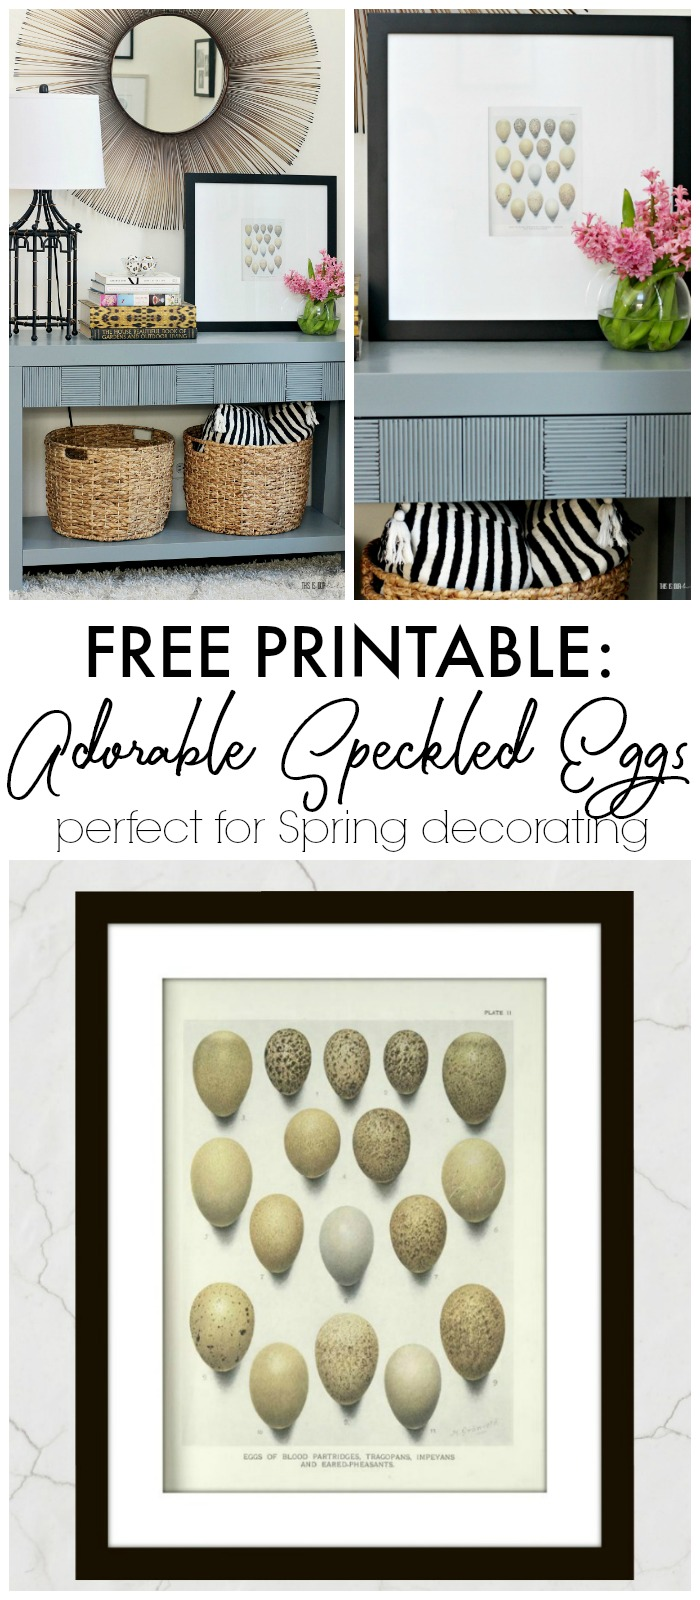 Adorable Speckled Eggs Free Printable for Spring - Darling Egg art perfect for Spring decorating - This is our Bliss